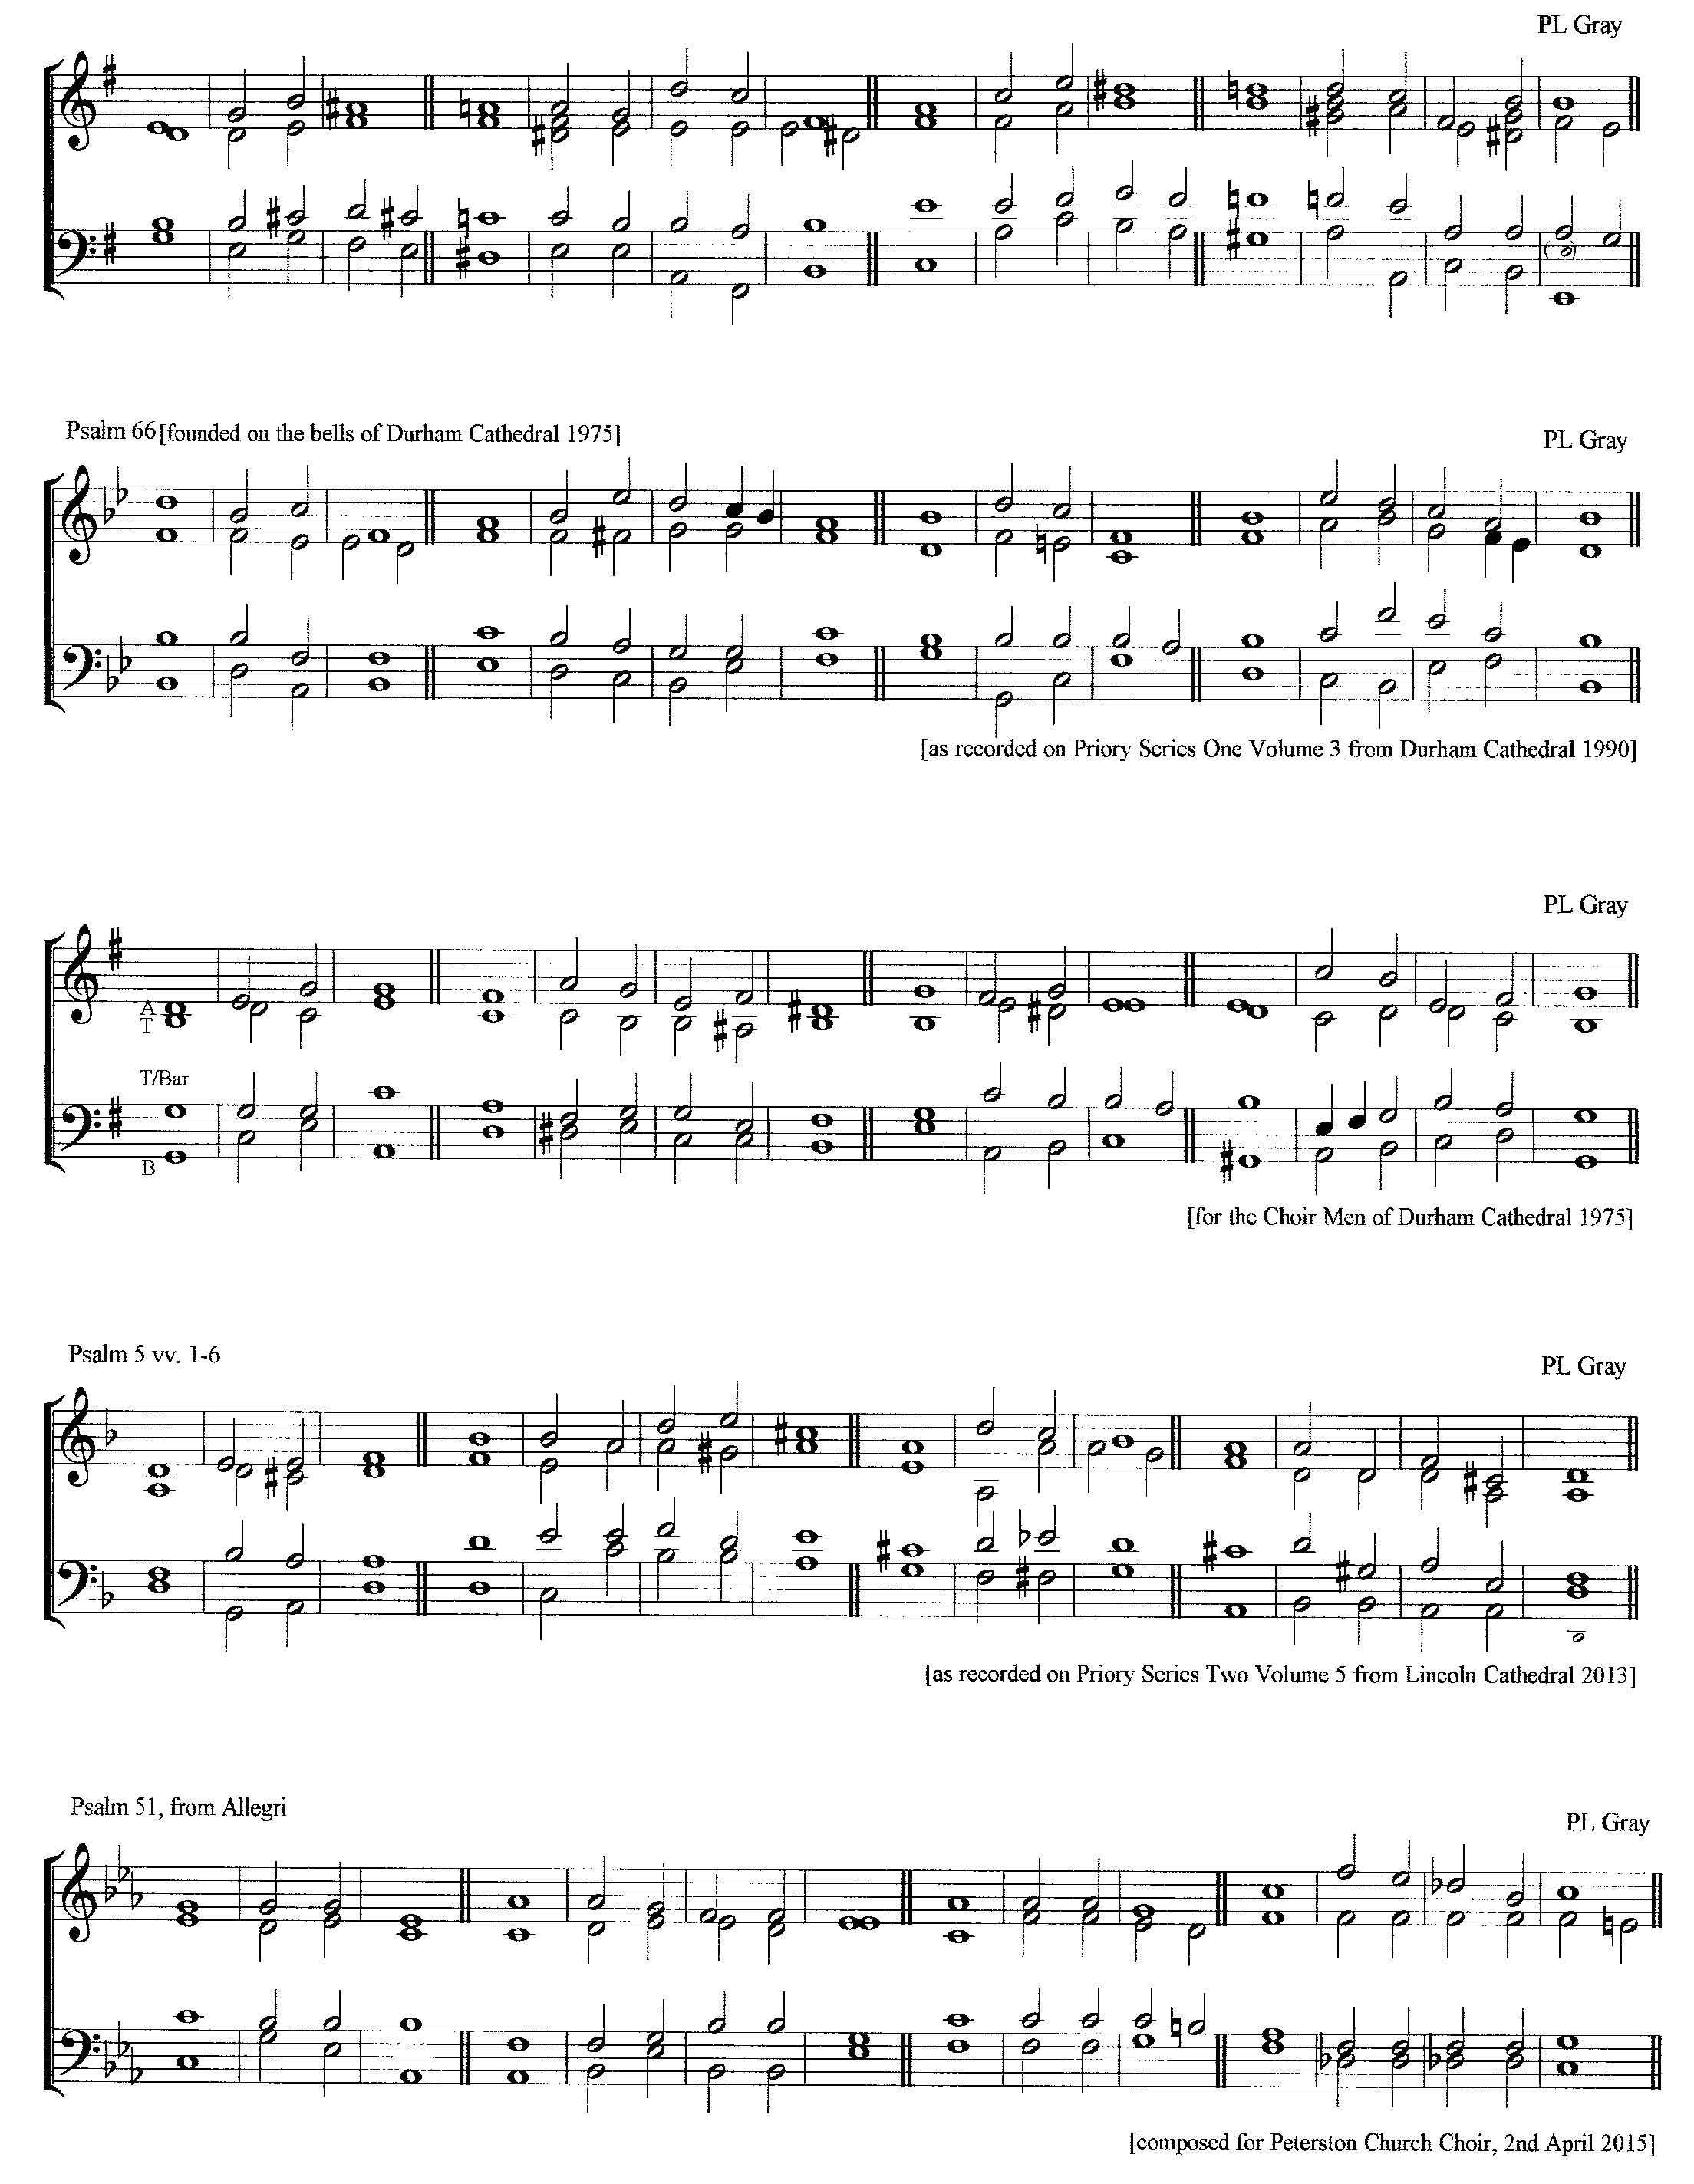 Various chants by Lindsay Gray set for various psalms